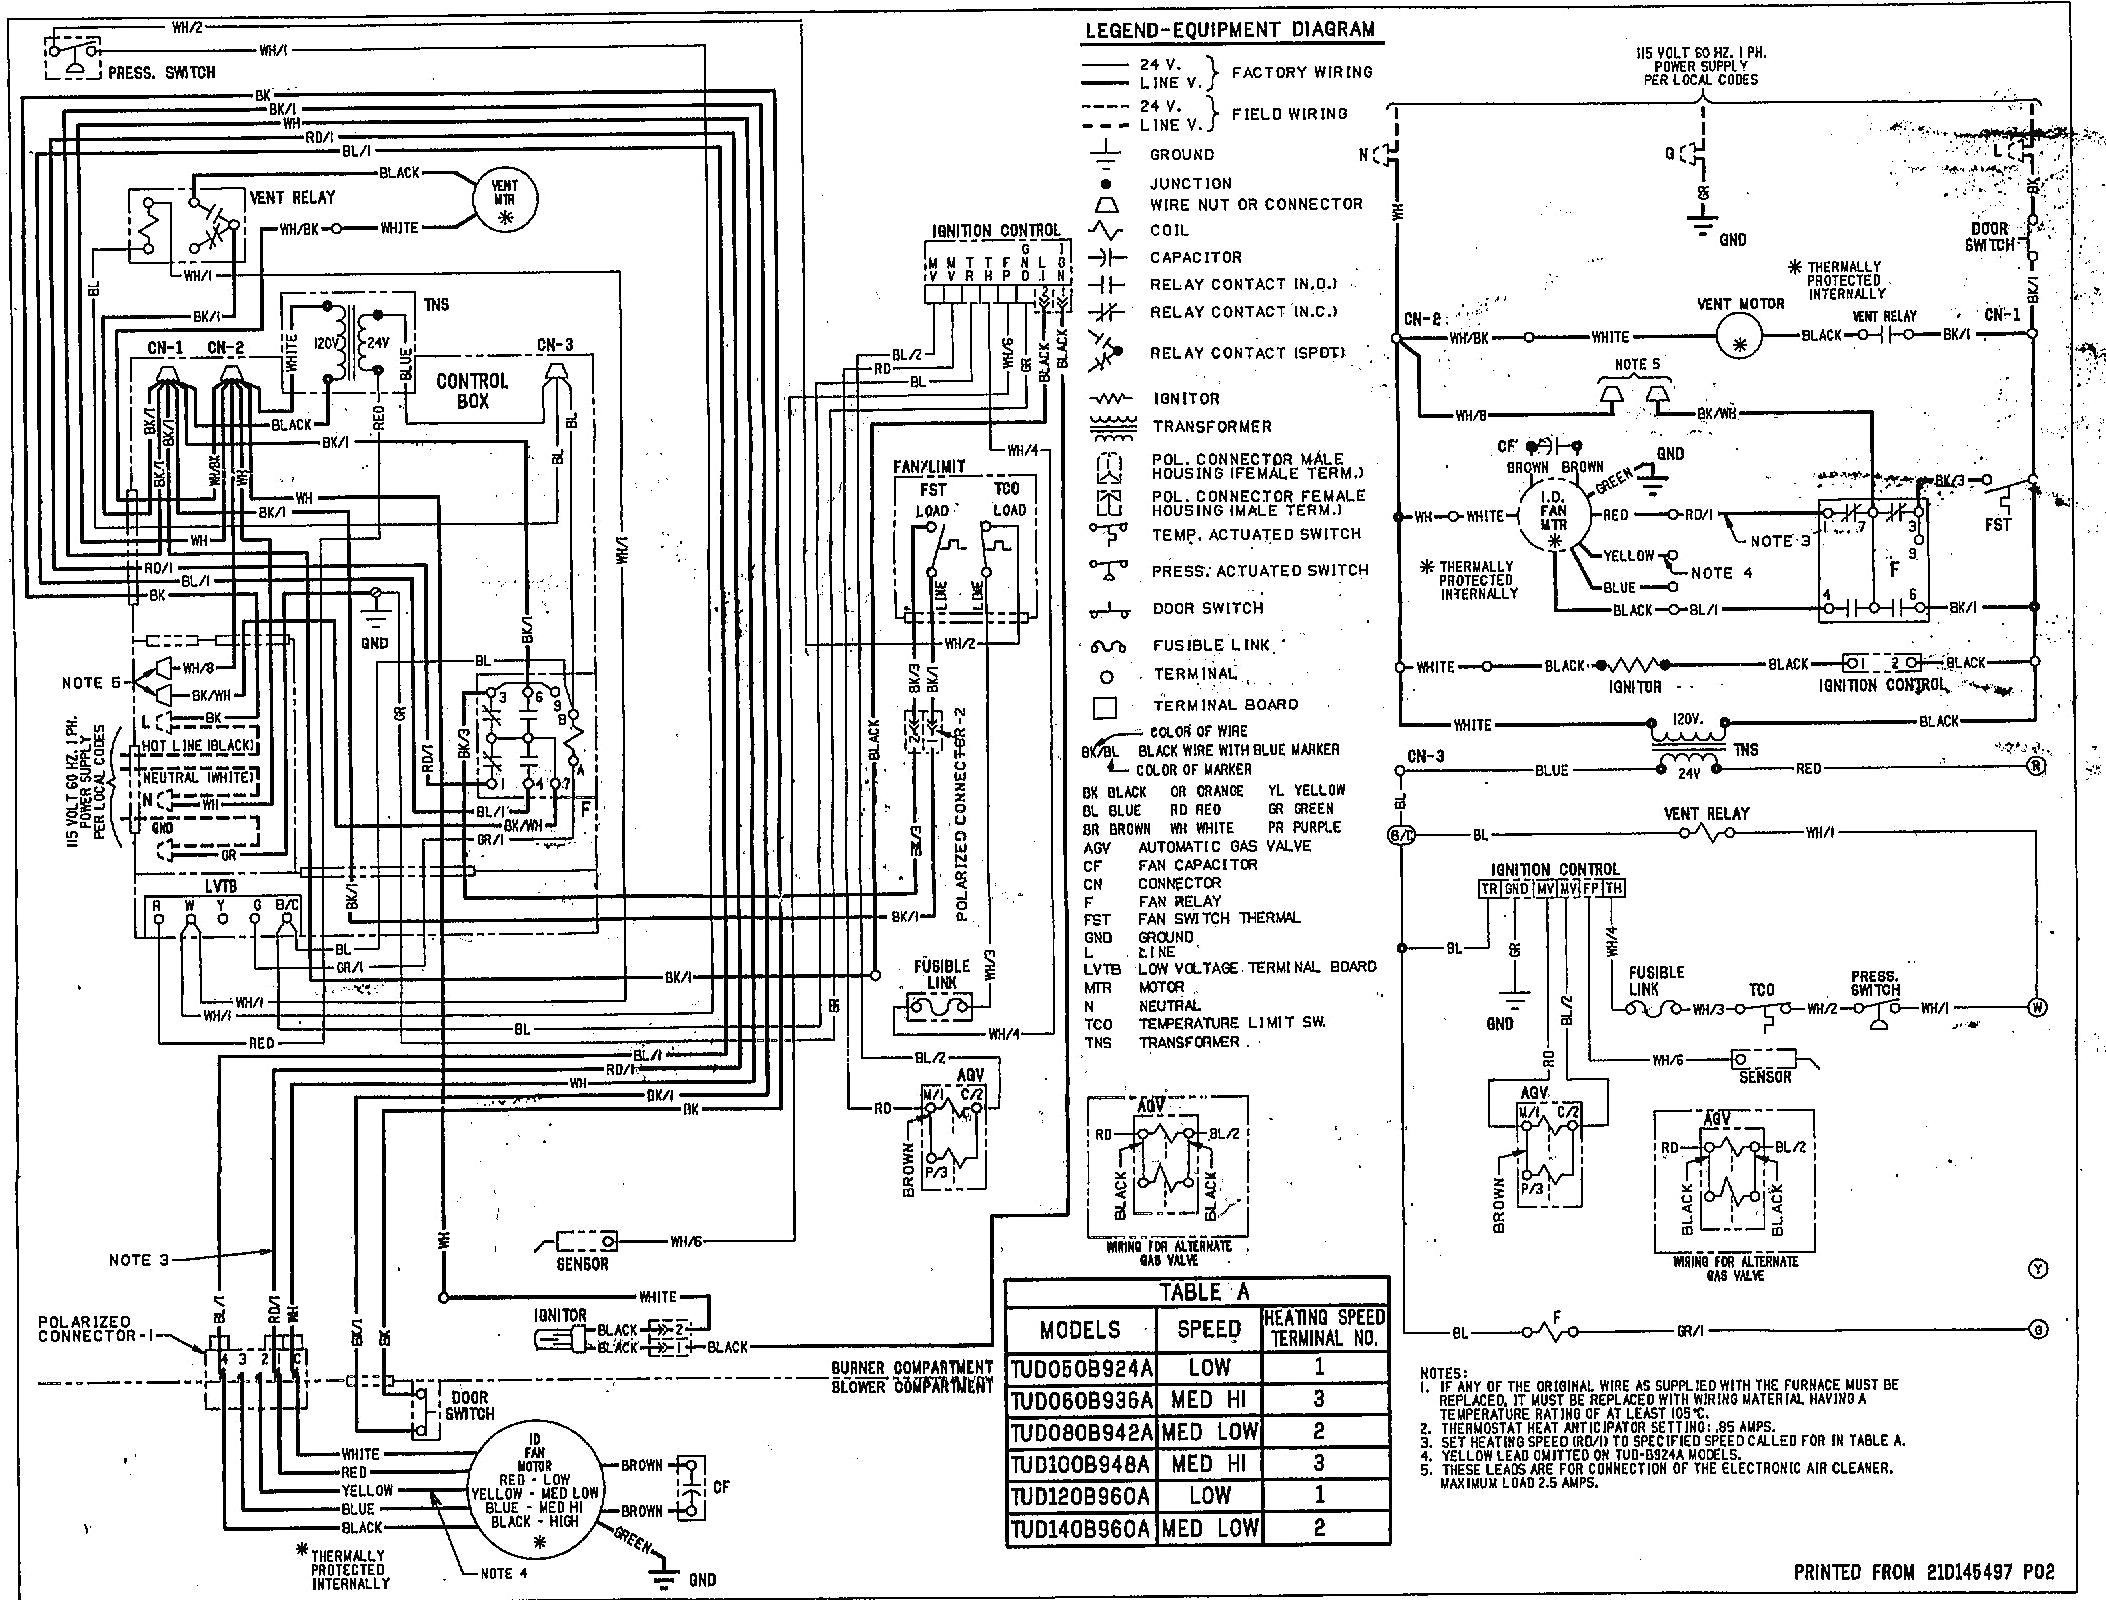 Atwood Rv Furnace Wiring Diagram from wholefoodsonabudget.com